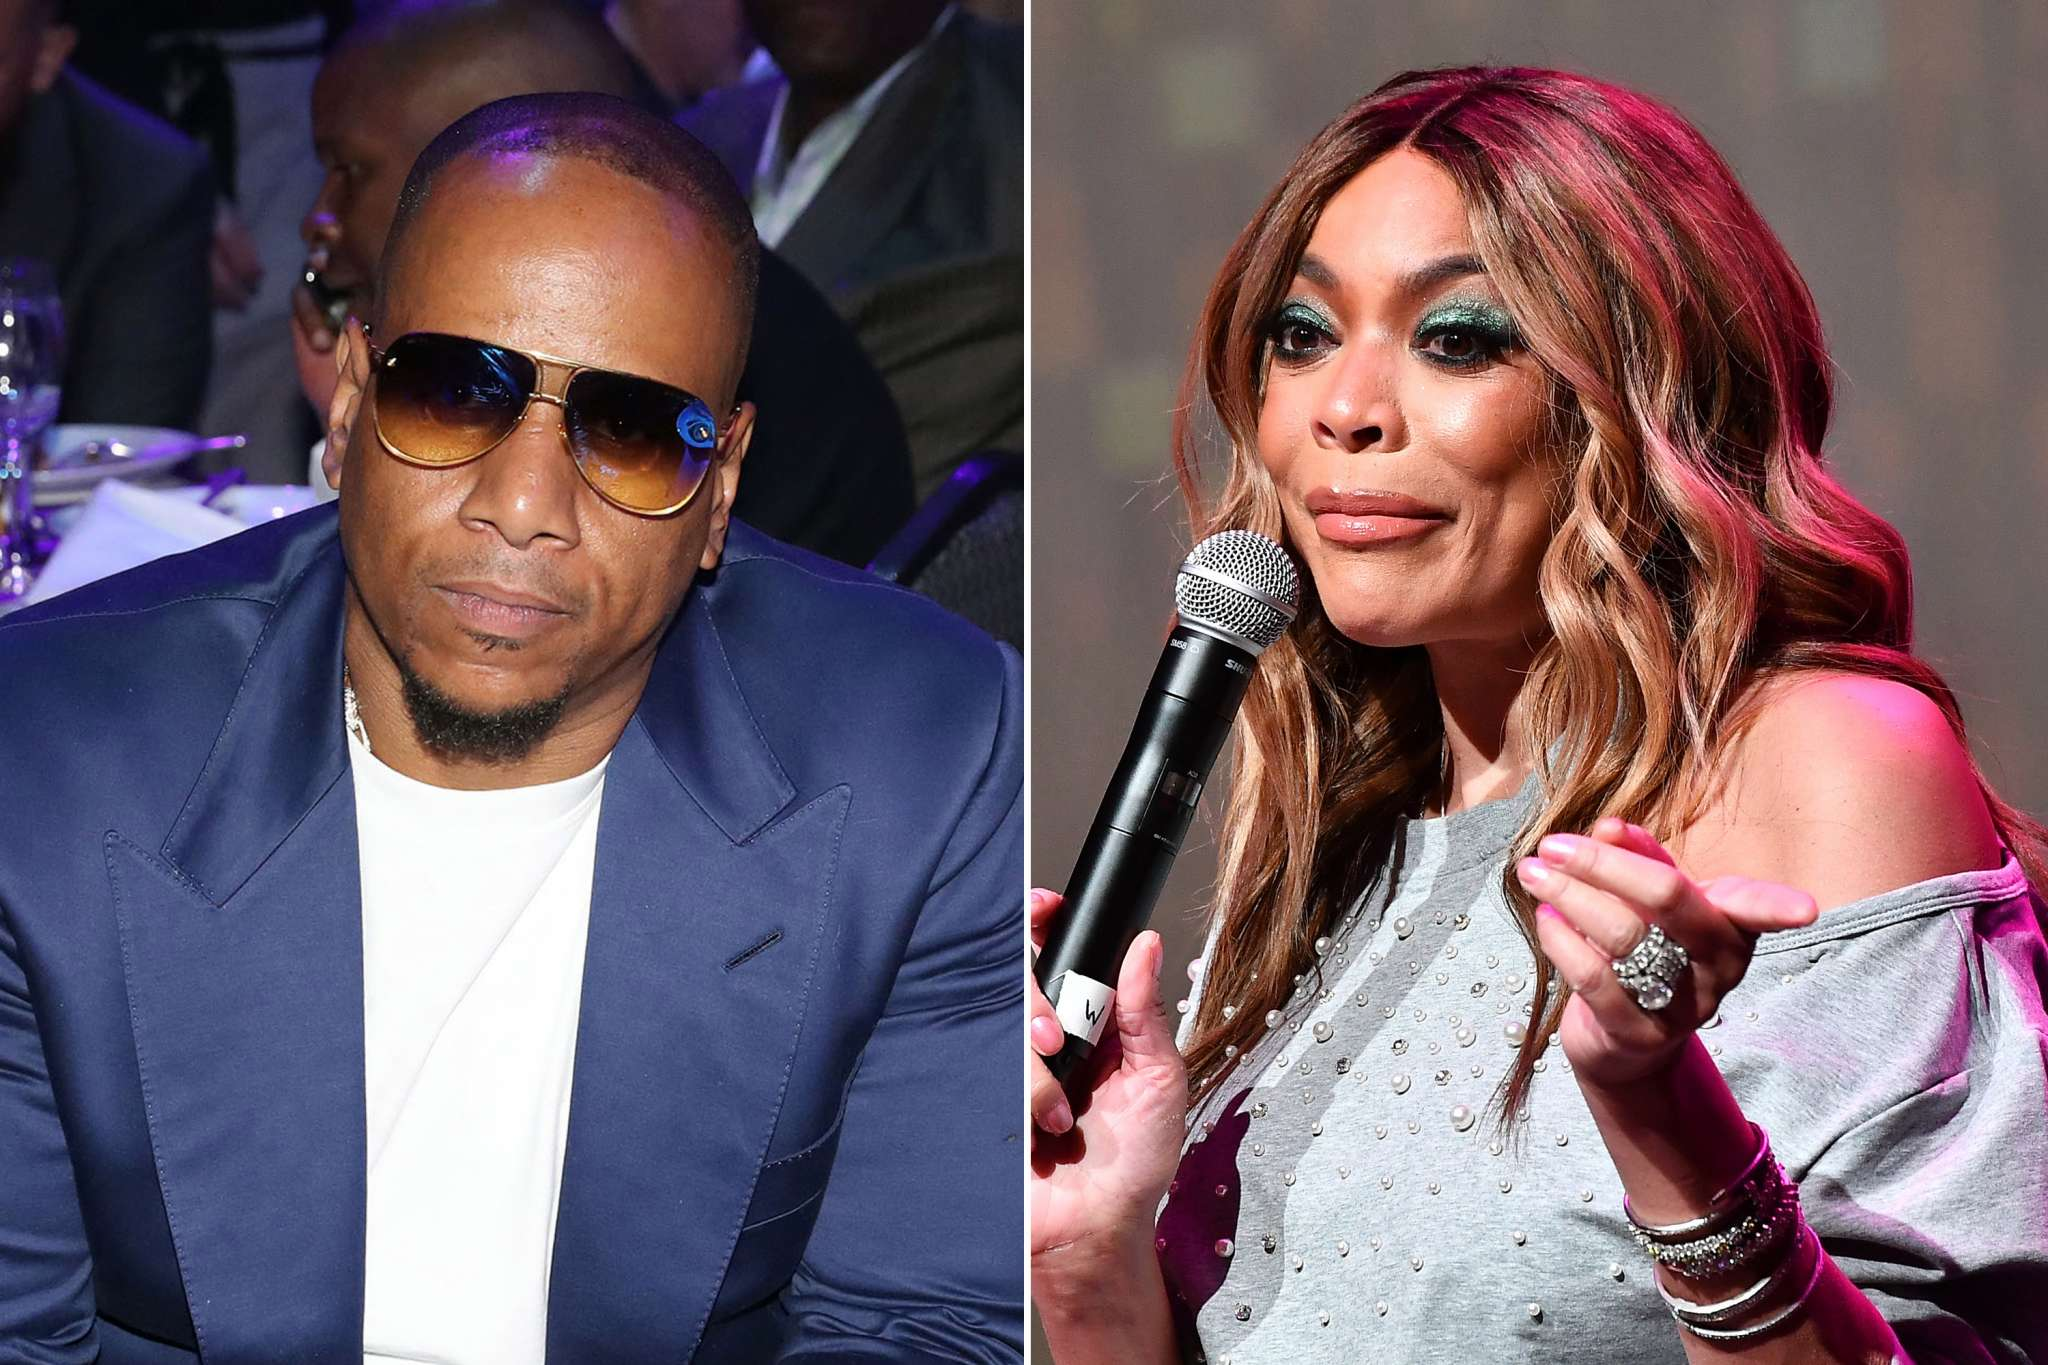 wendy-williams-to-write-a-tell-all-book-about-her-kevin-hunter-marriage